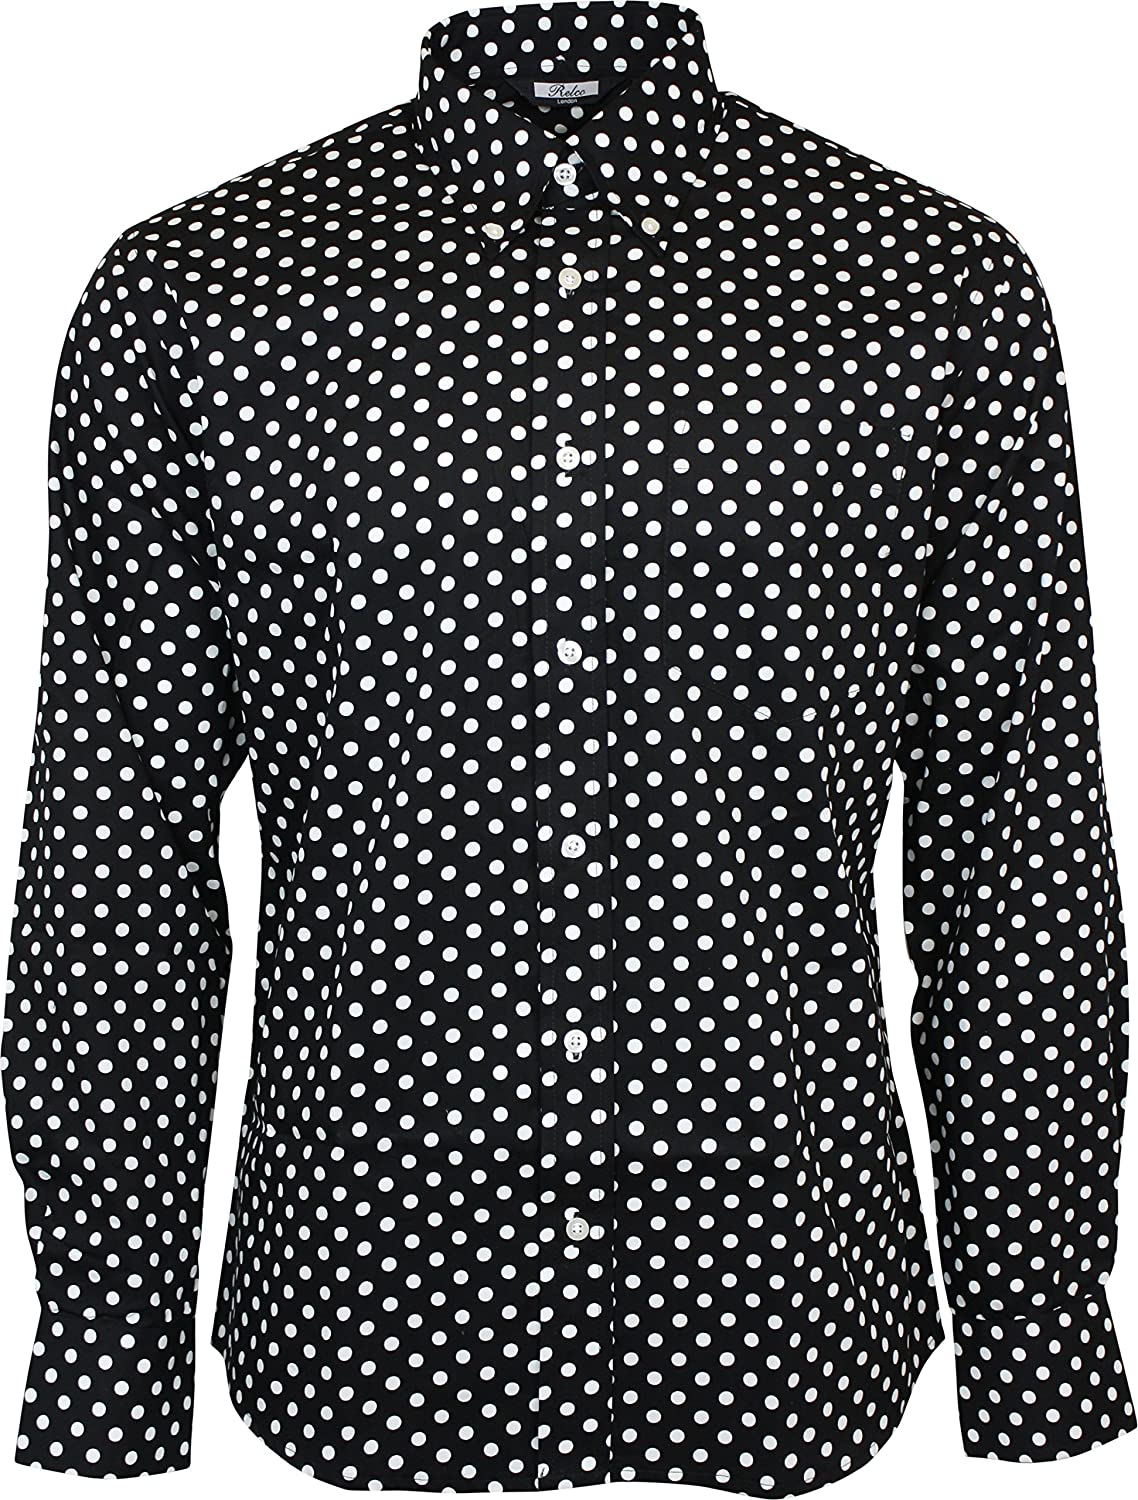 "Beautiful Polka Dot Print Shirt from Huffer. - % Cotton - Black Background with White Polka Dot Print - Short Sleeve - Size Medium - 38"" Chest (UK 38/EU 48) - ."